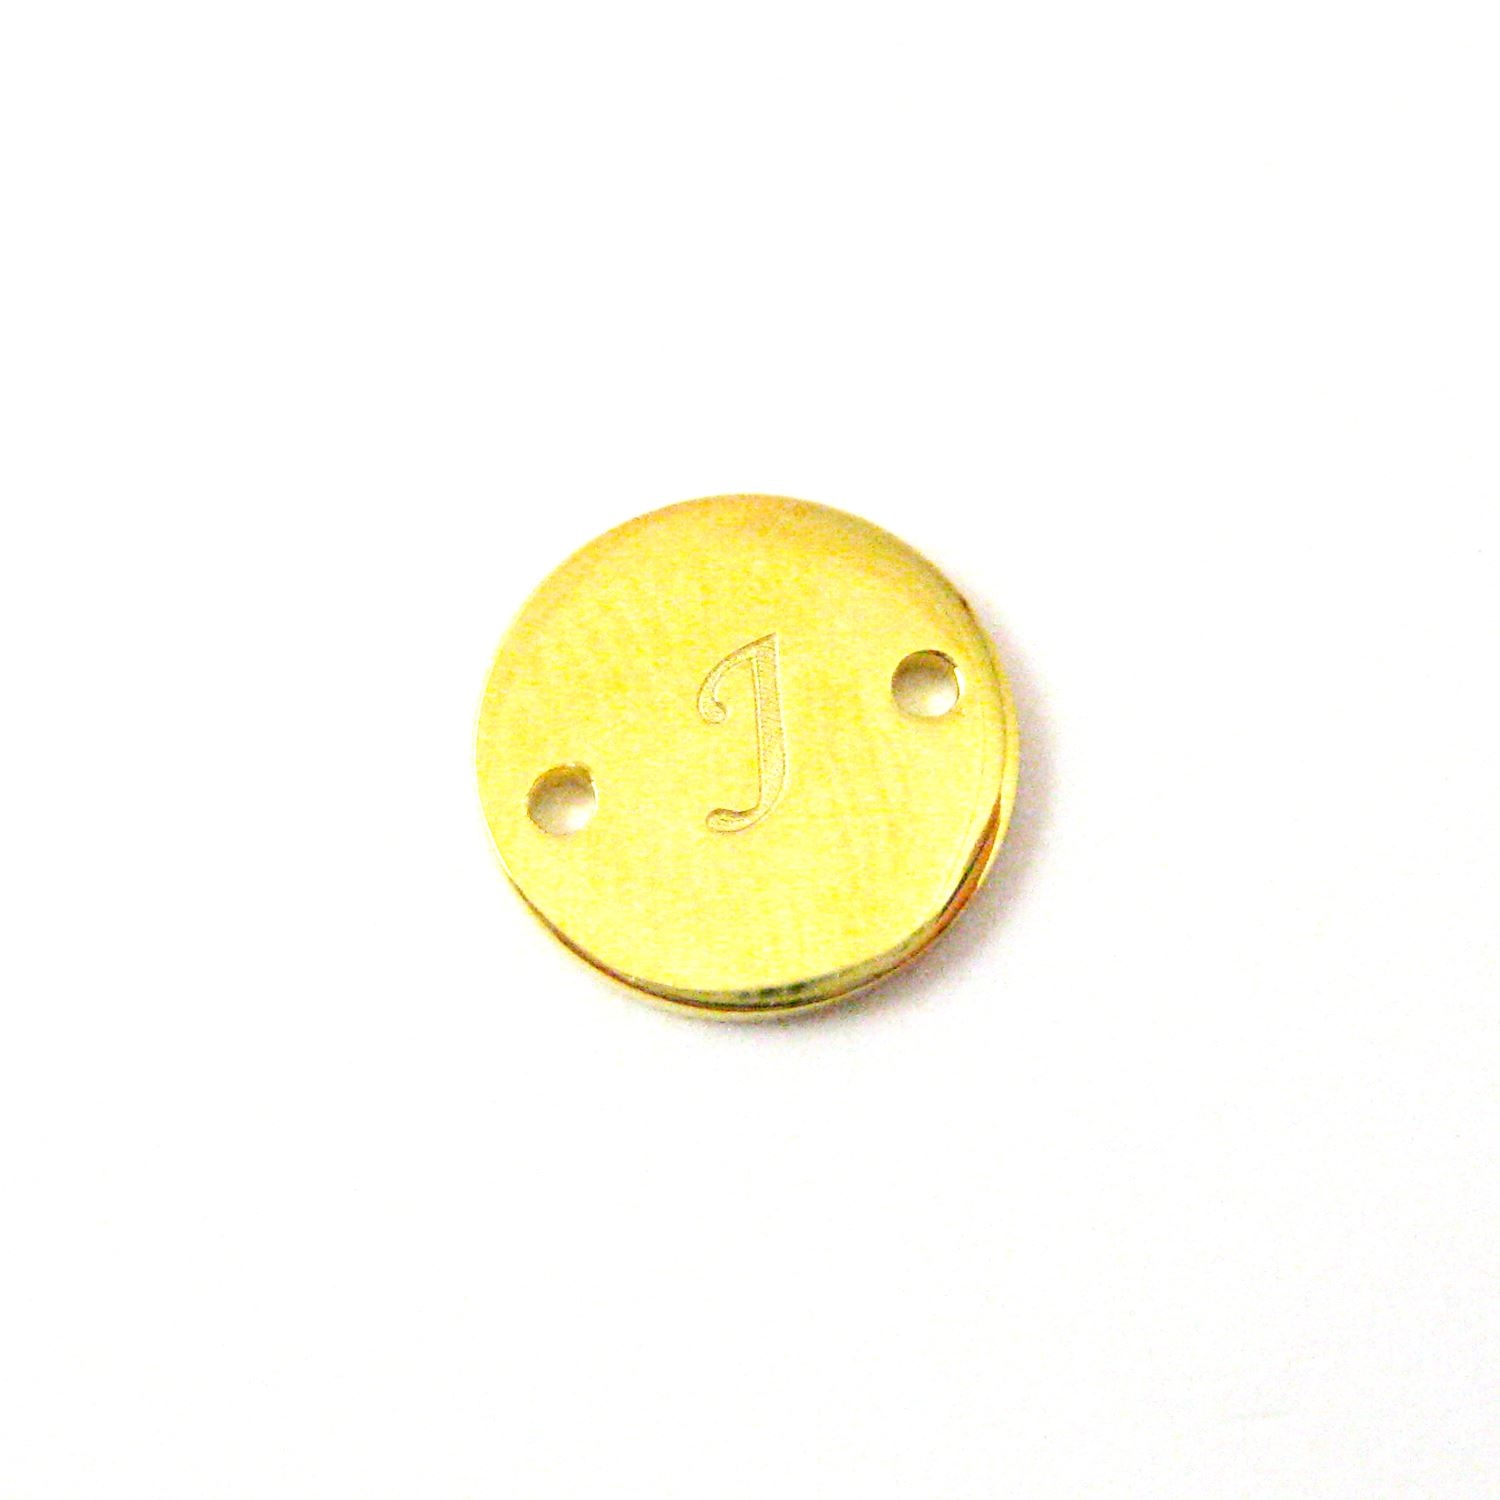 22K Gold plated Sterling Silver Smooth A-Z Initial Stamped Round Connector Tag- High Polish Vermeil